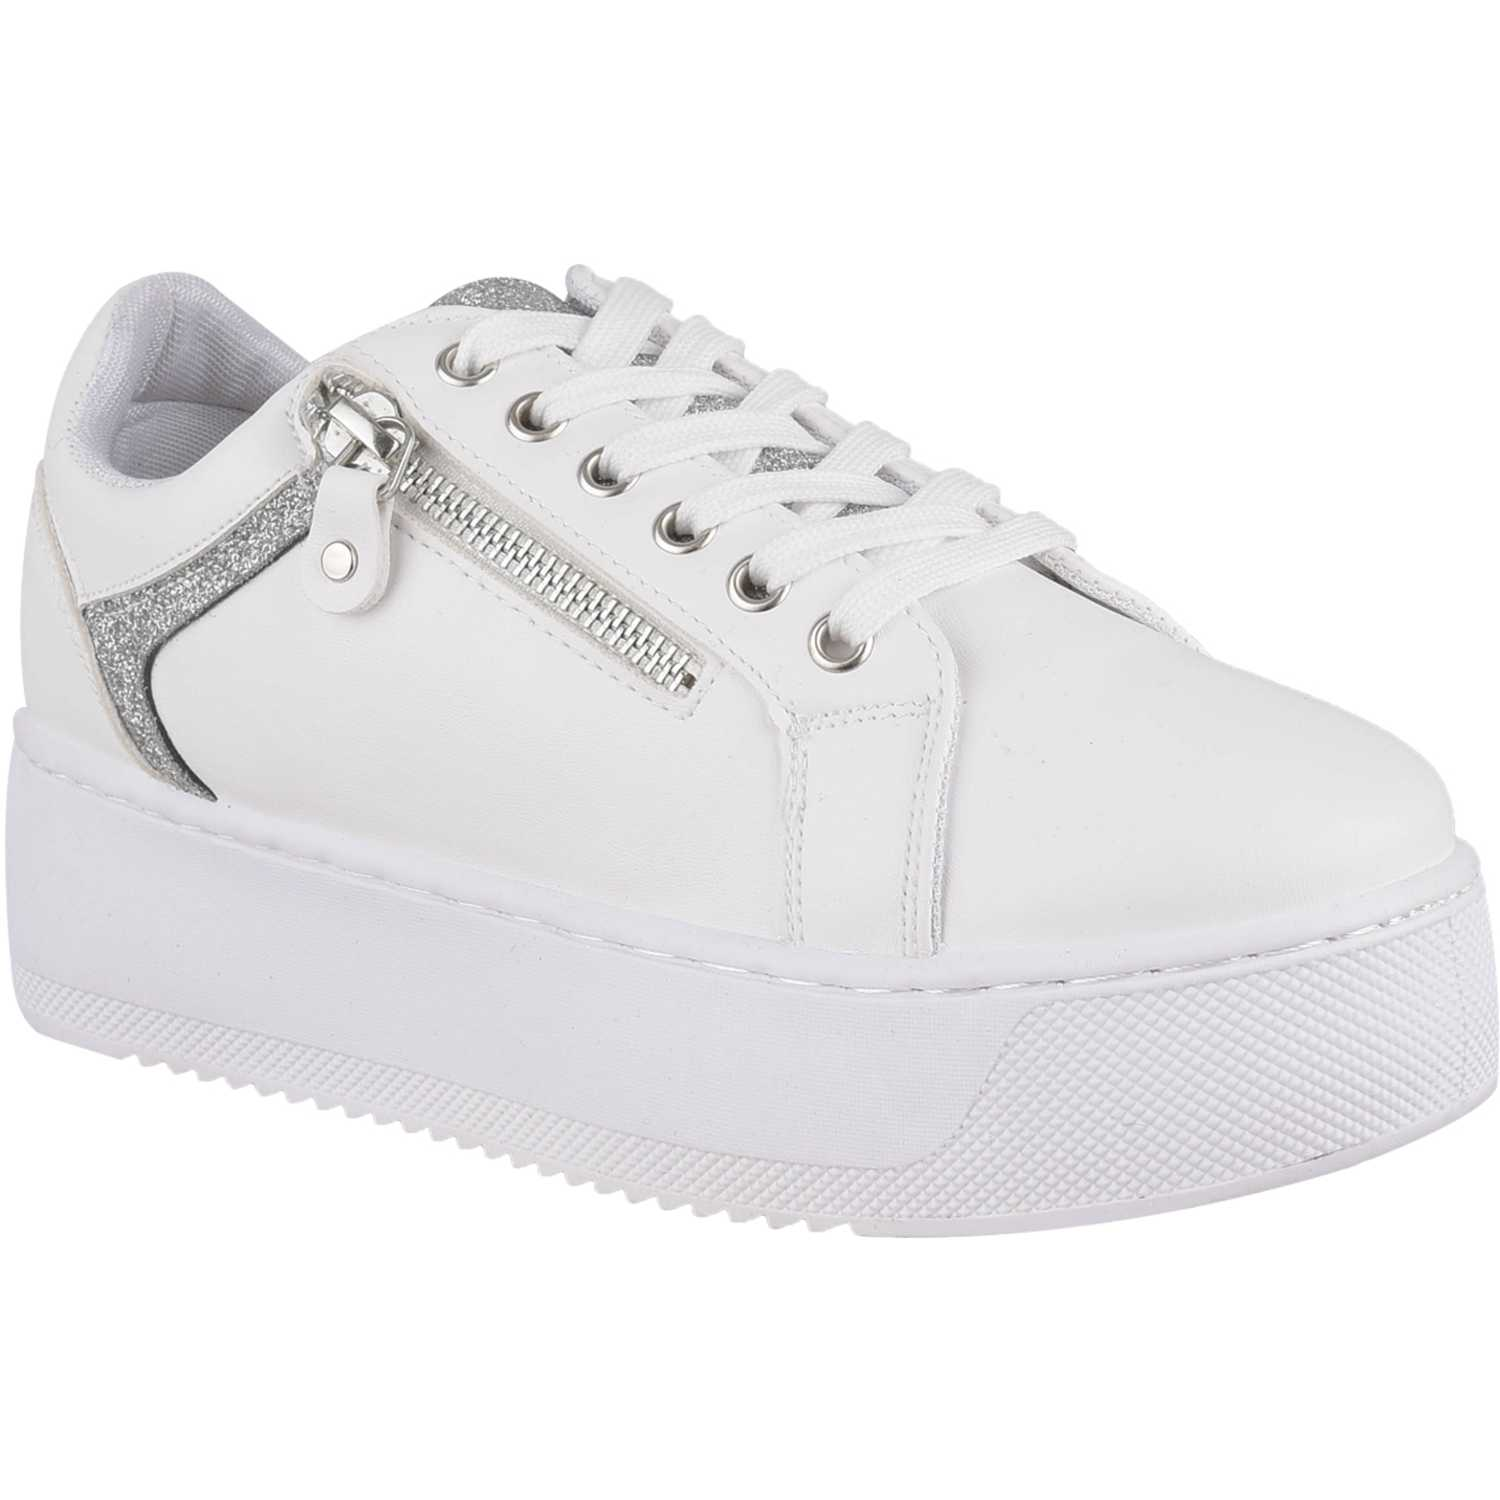 Platanitos zc 8369 Blanco Zapatillas Fashion